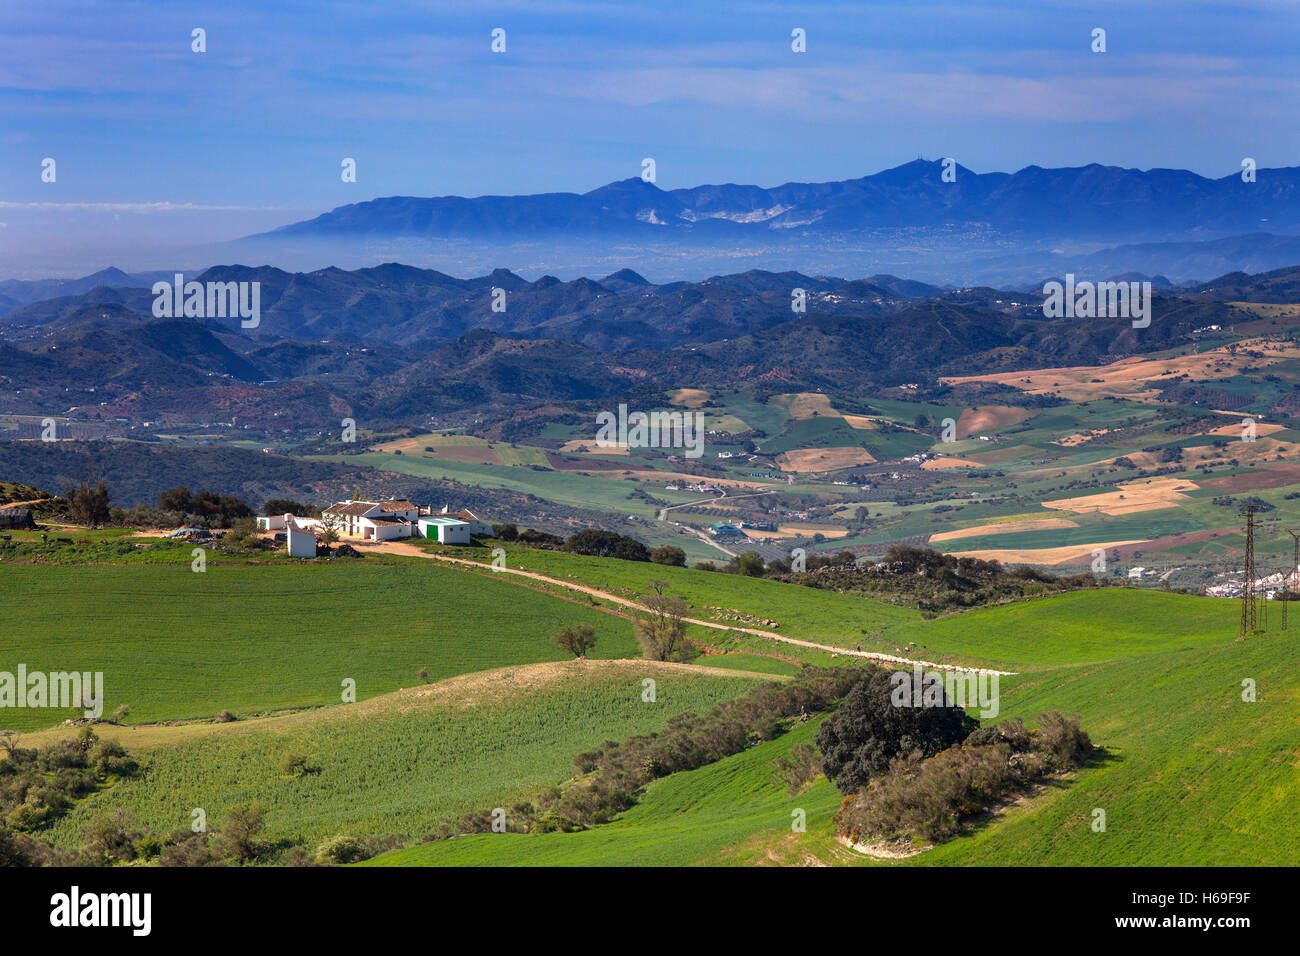 Landscape from Torcal de Antequera National Park, Malaga Province, Andalucia, Spain - Stock Image